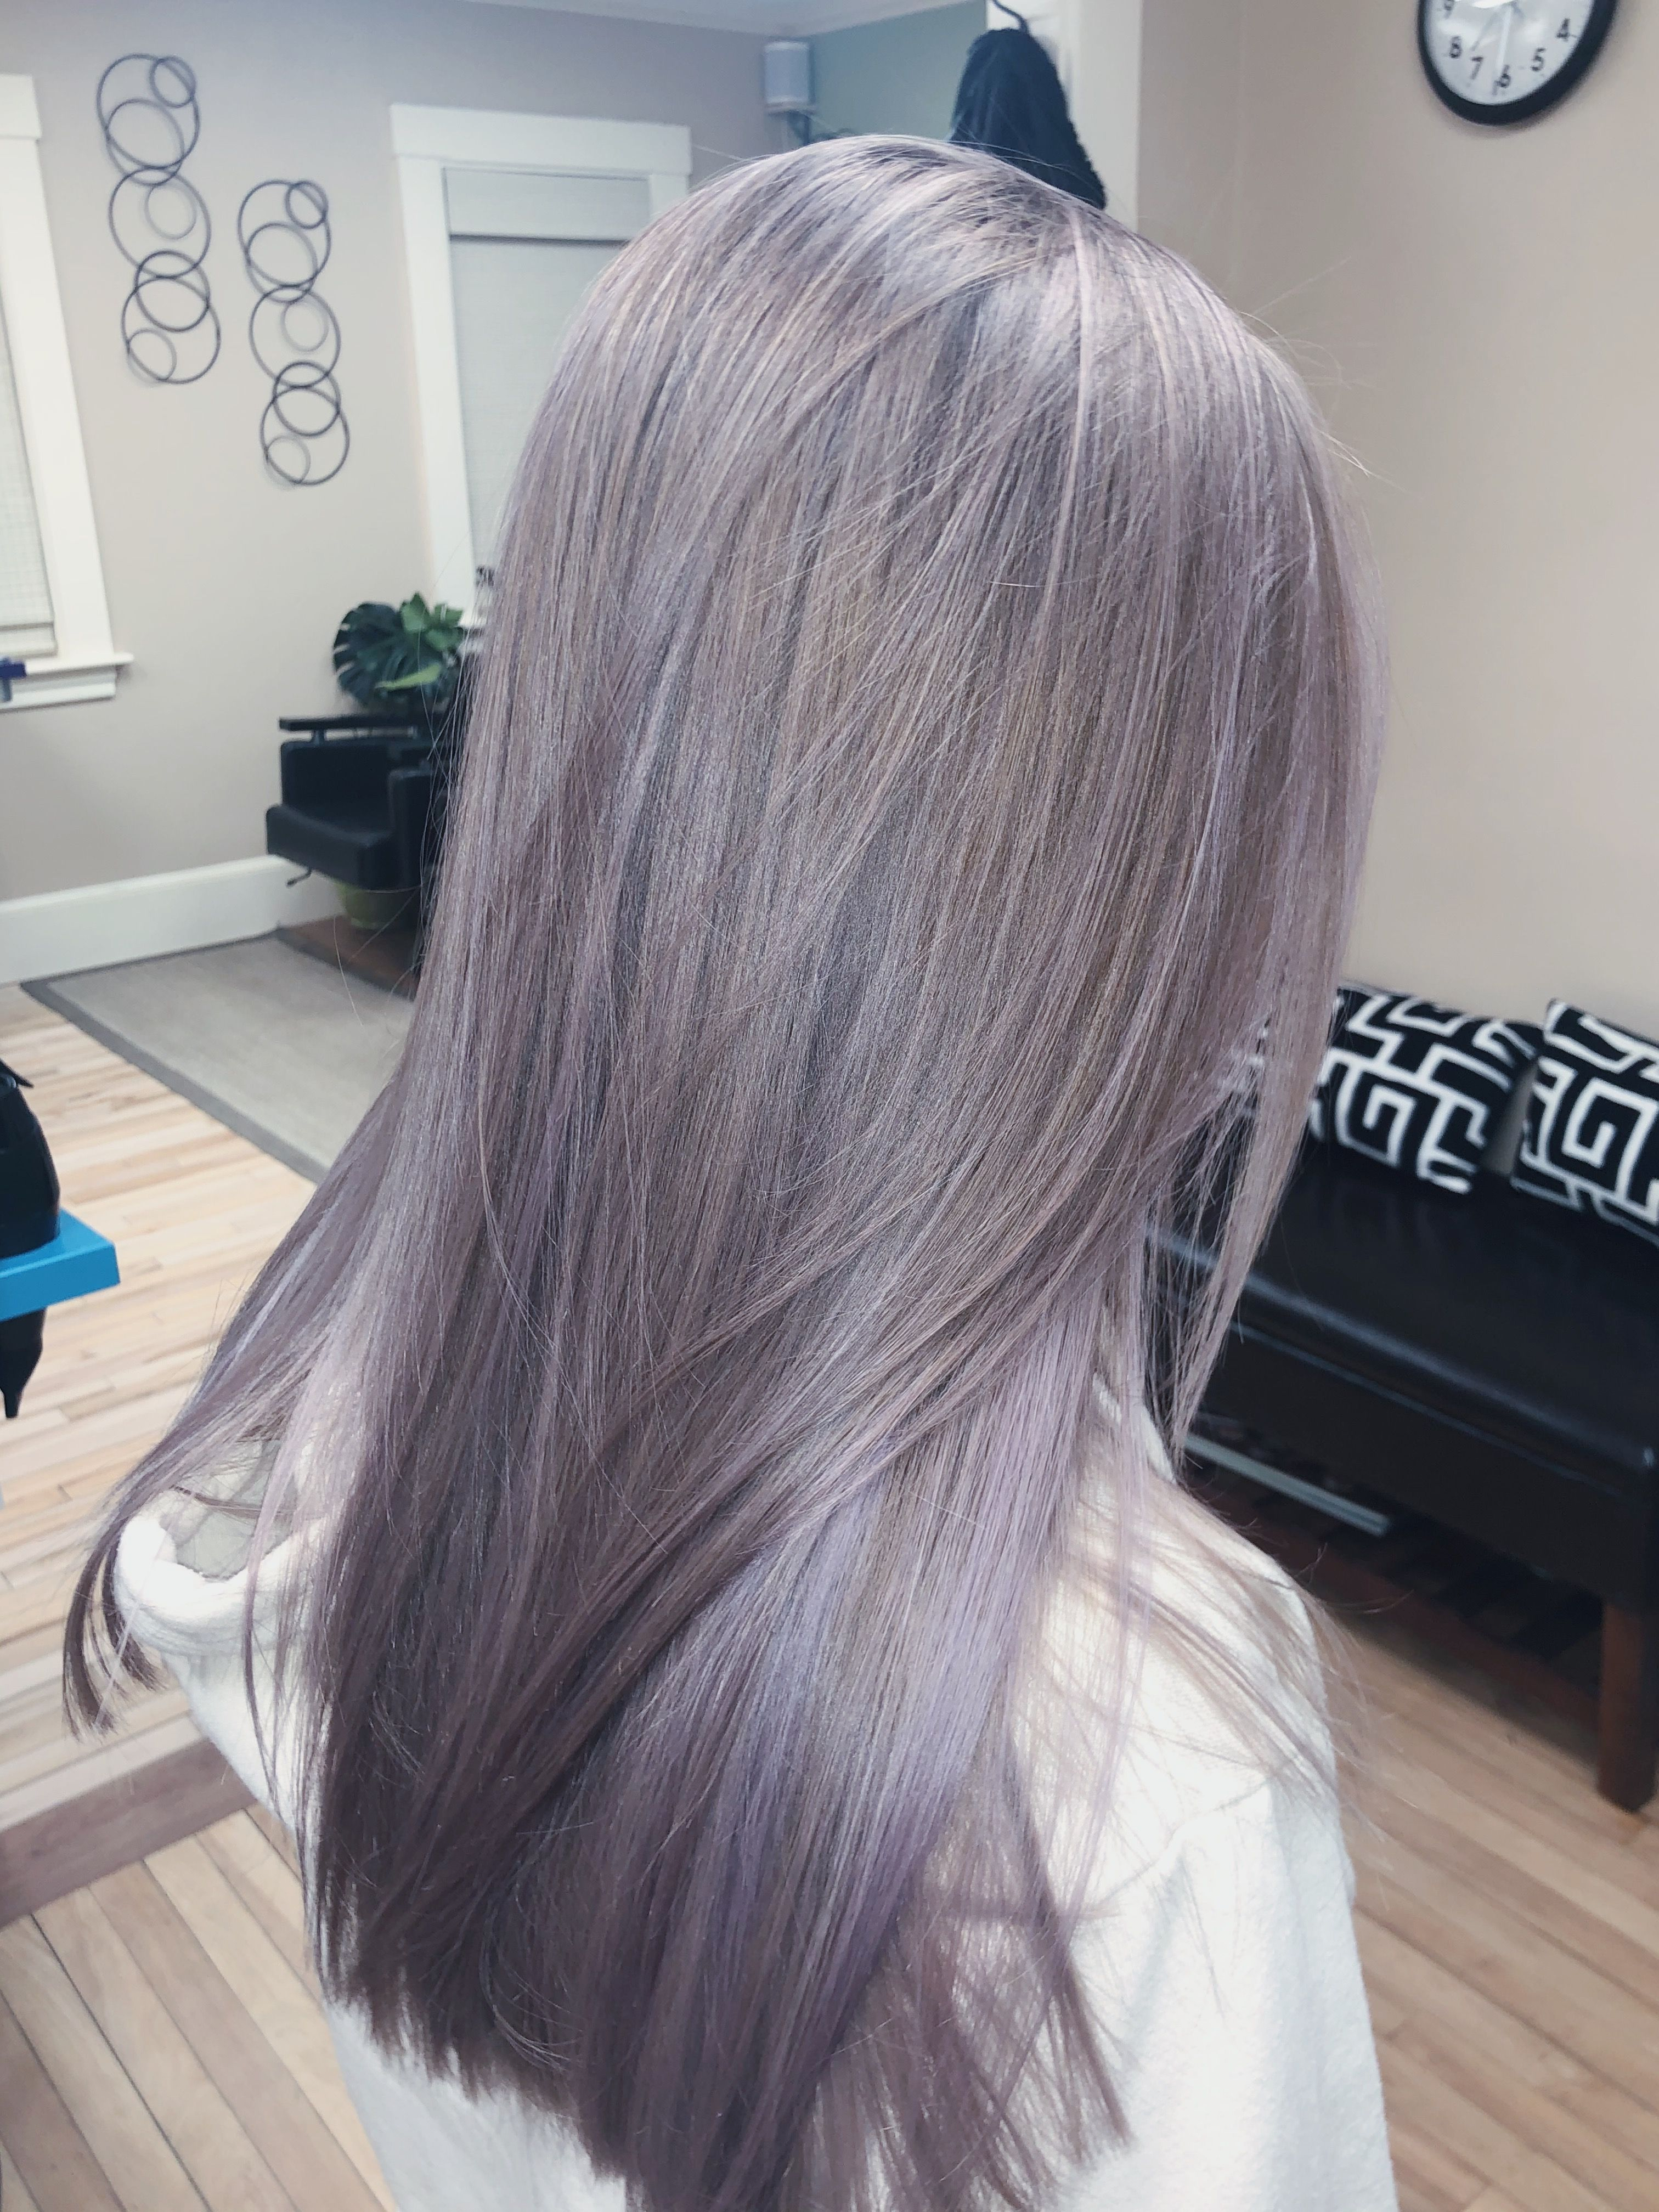 Gray Hair Wigs For African American Women Lace Wigs With Bangs Human Hair Grey Hair Braids Hair Colour To Hide Grey Brown And Grey Ombre Blue Wig With Bangs